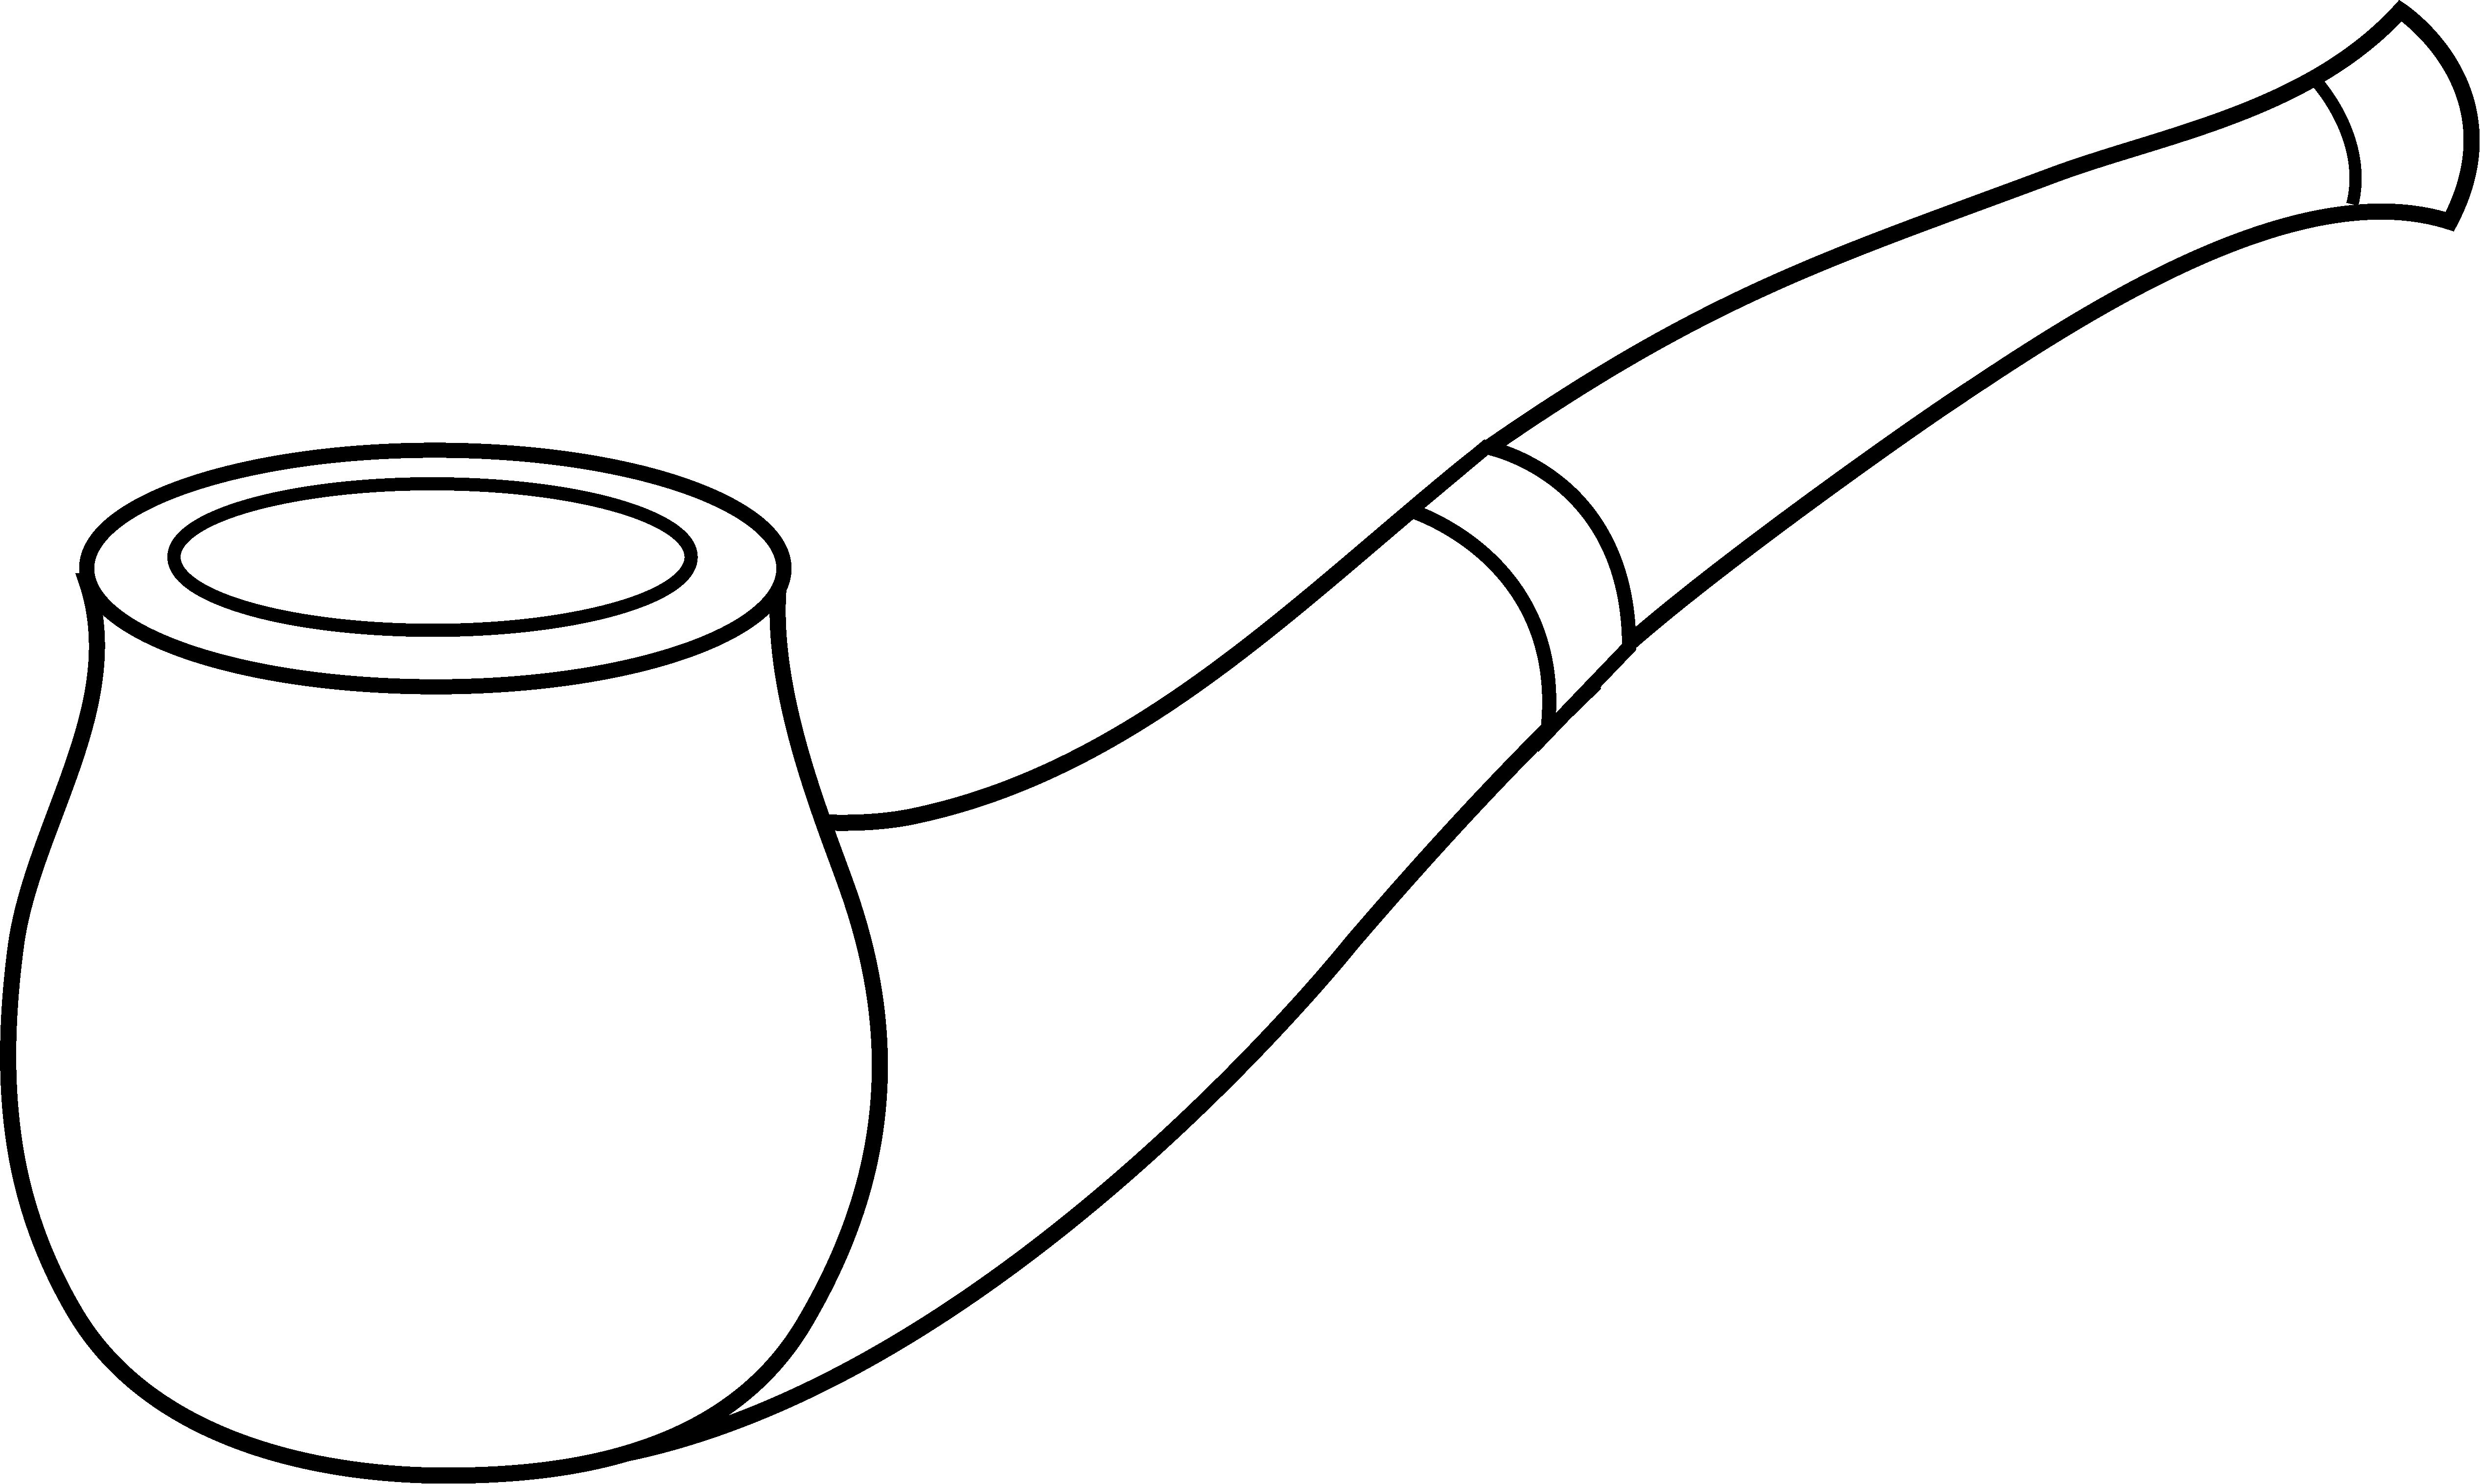 huge freebie download. Pipe clipart small